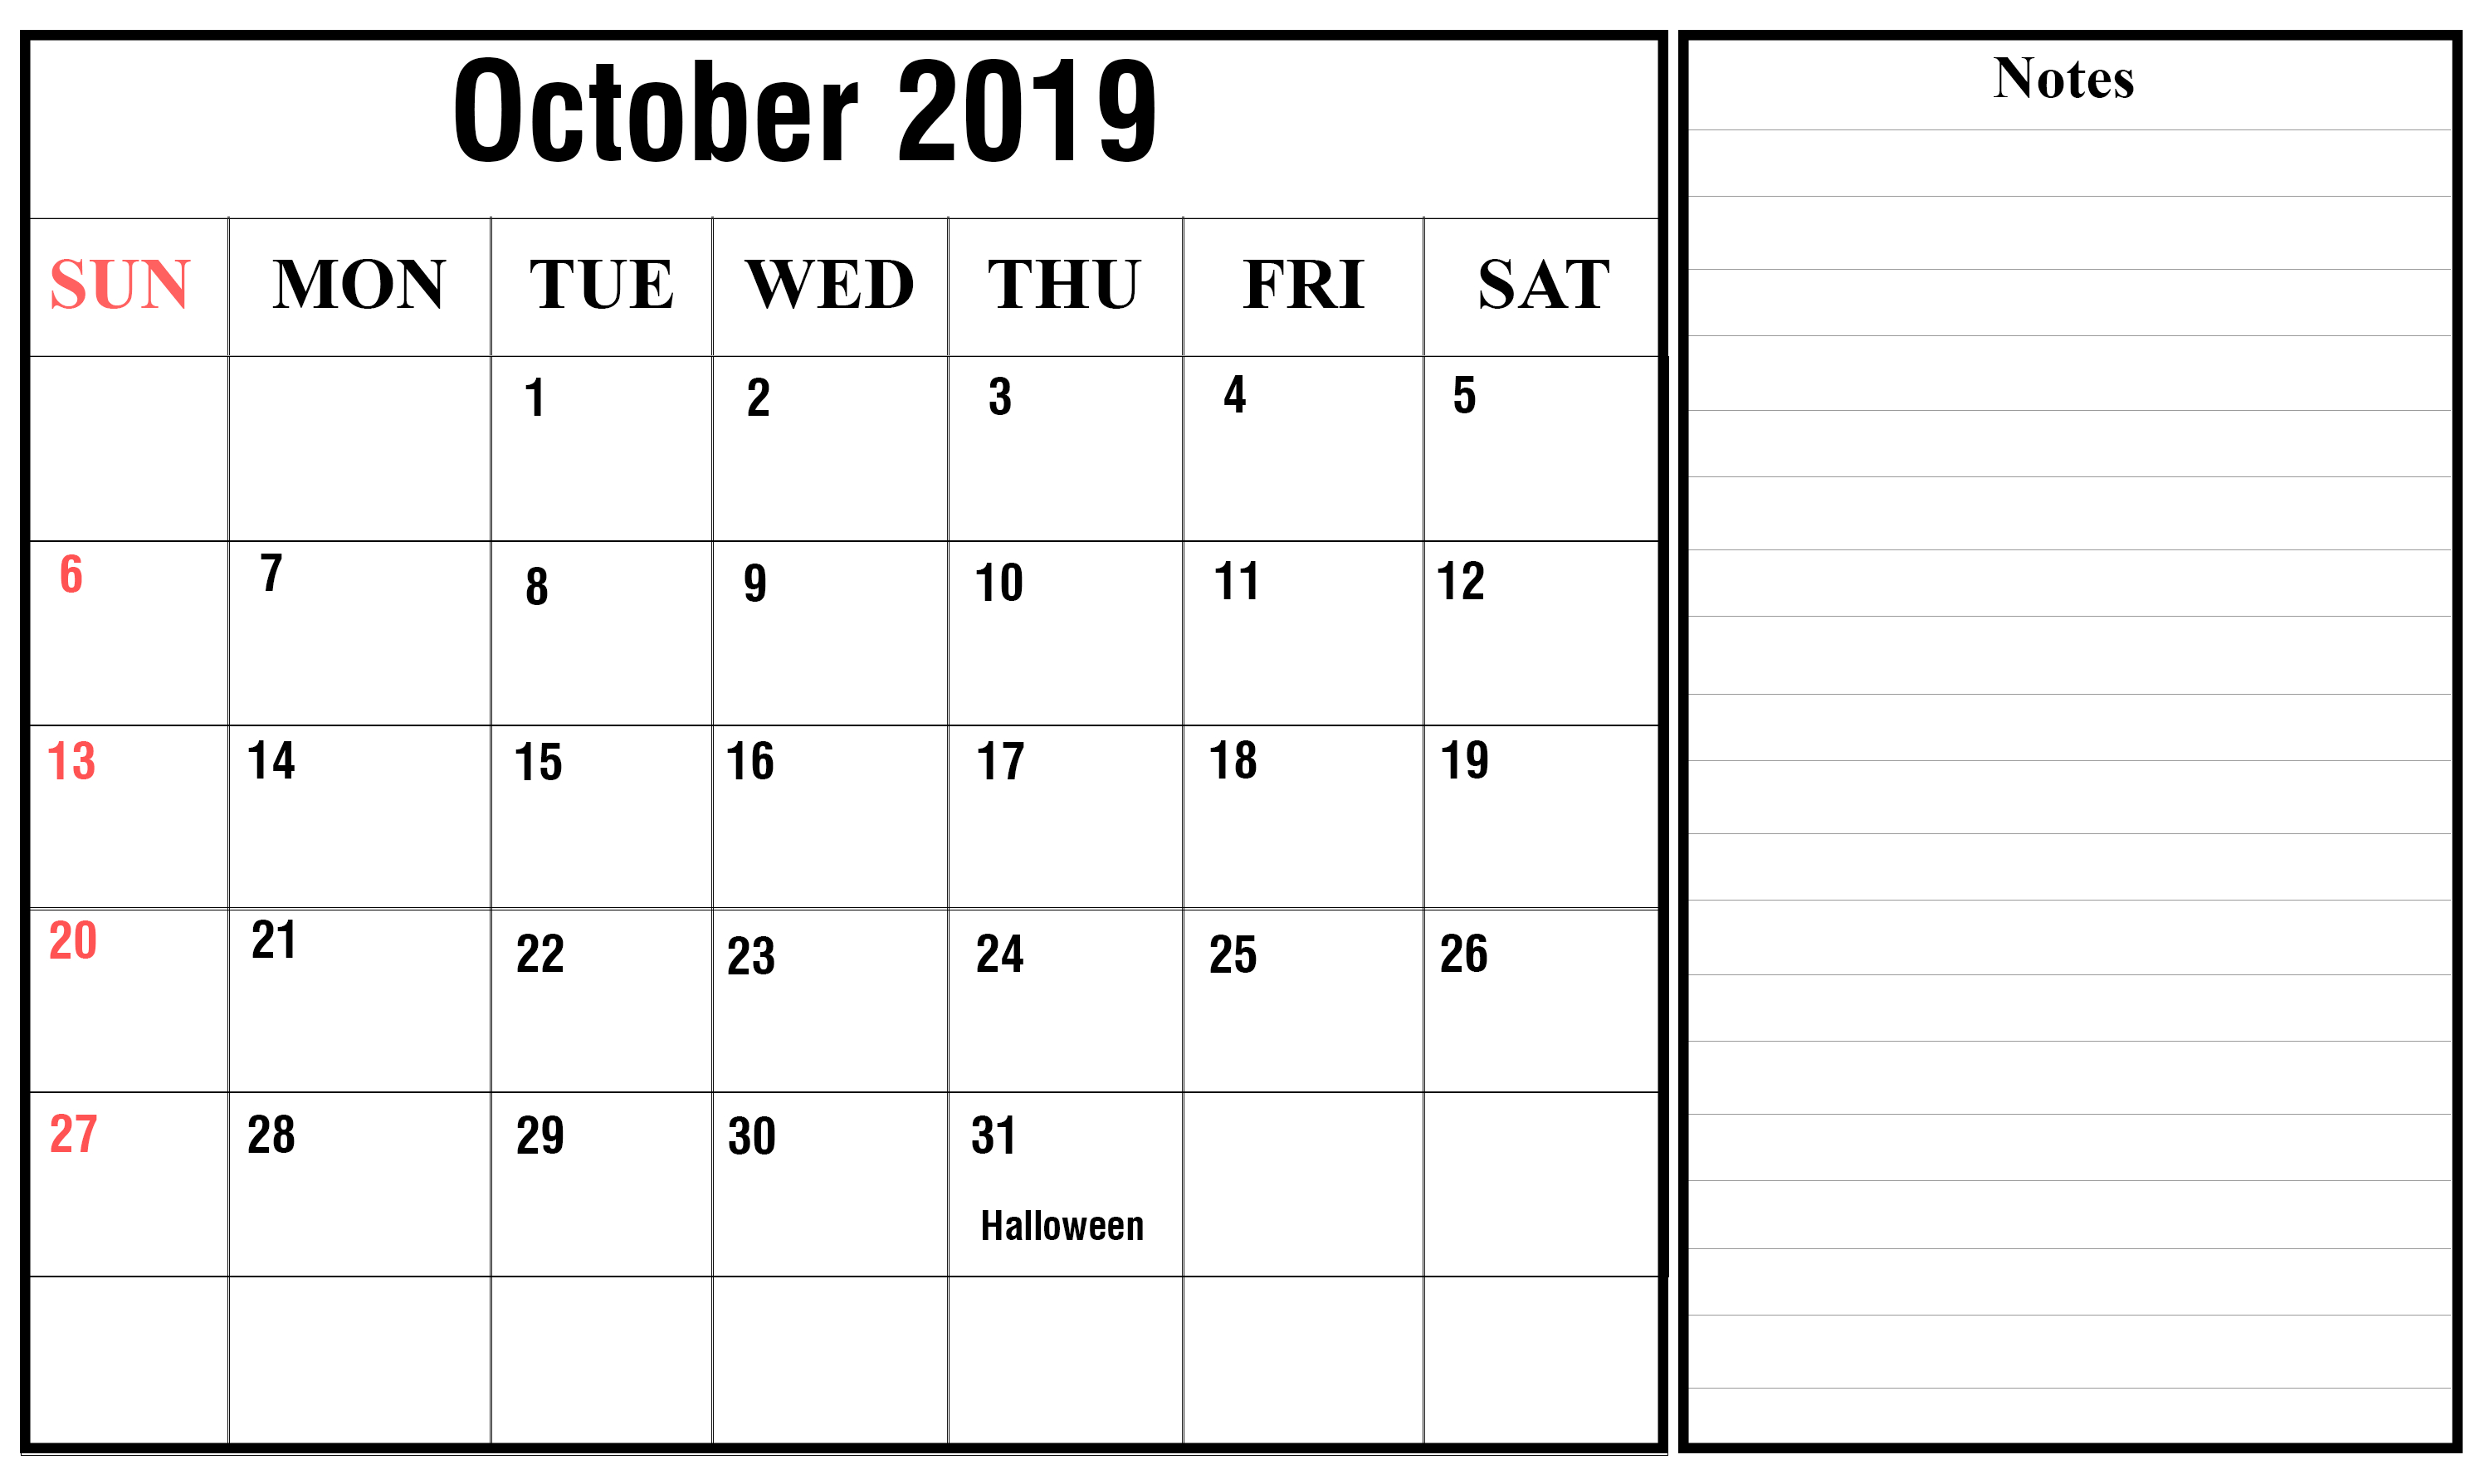 October 2019 Blank Calendar Printable Template With Editable Notes intended for Free Printable Scary October Calendar 2019